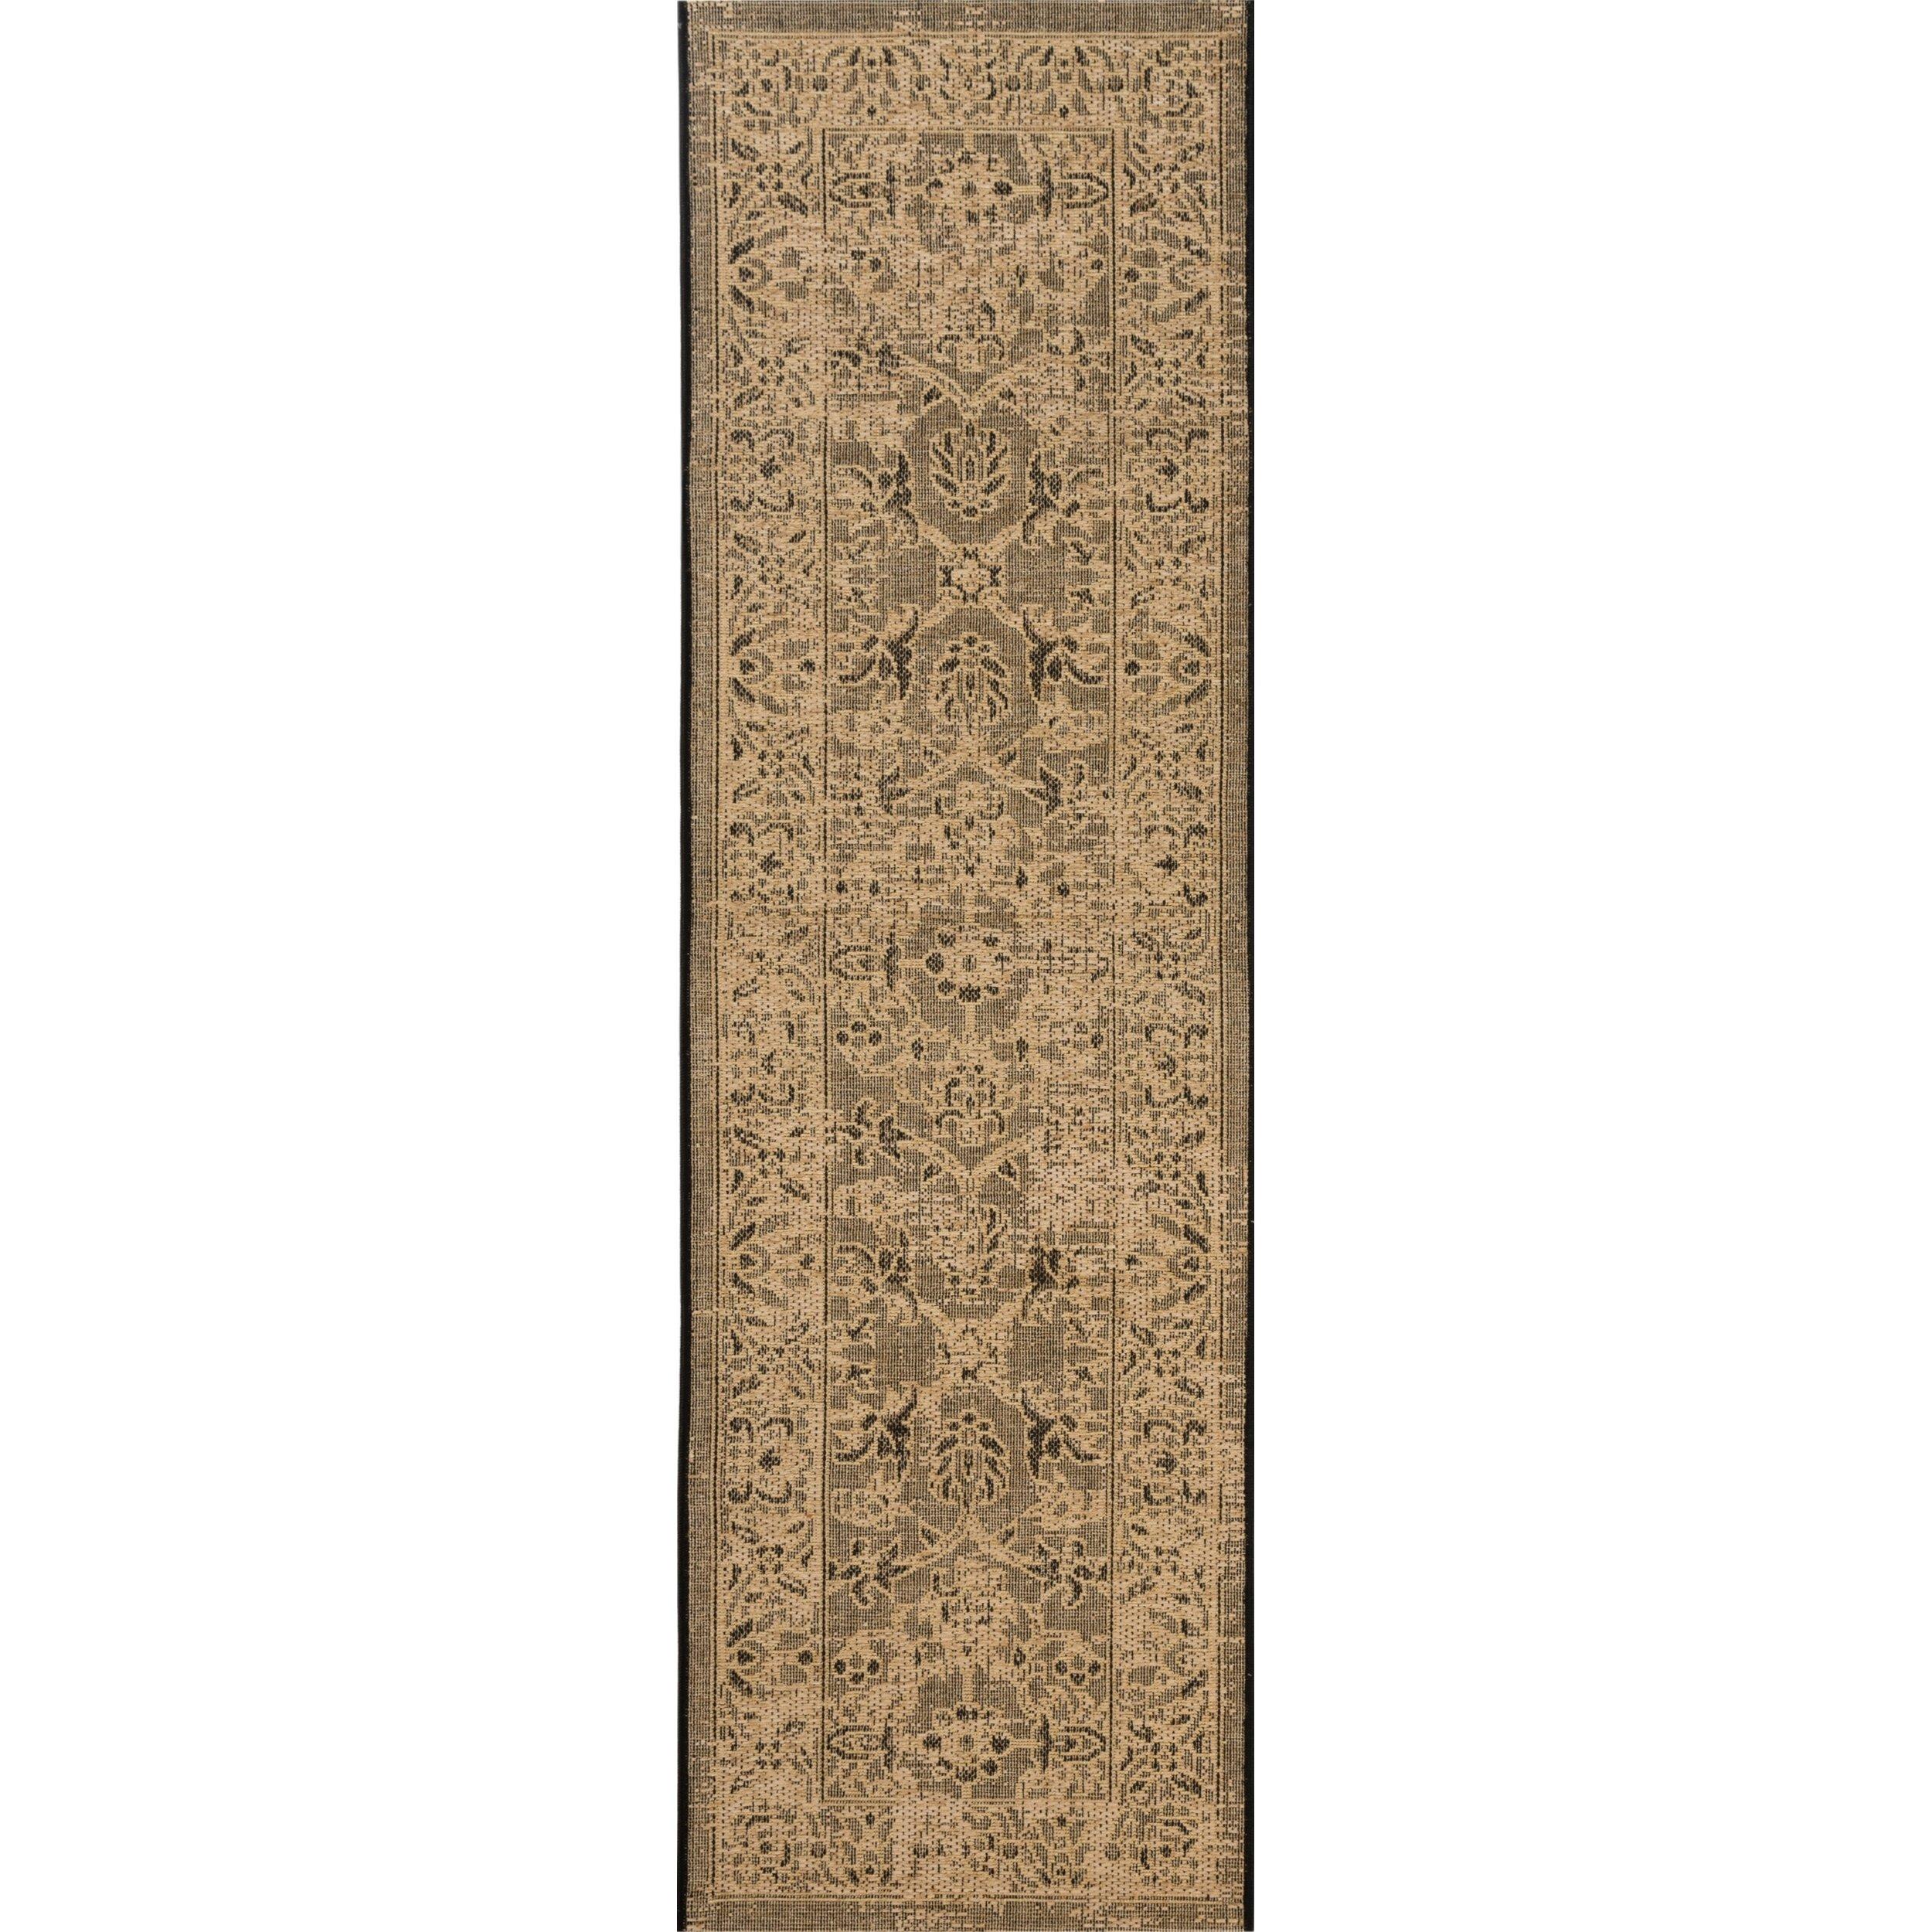 Safavieh Palazzo Collection PAL133-16211 Black and Cream Runner (2' x 7'3'')